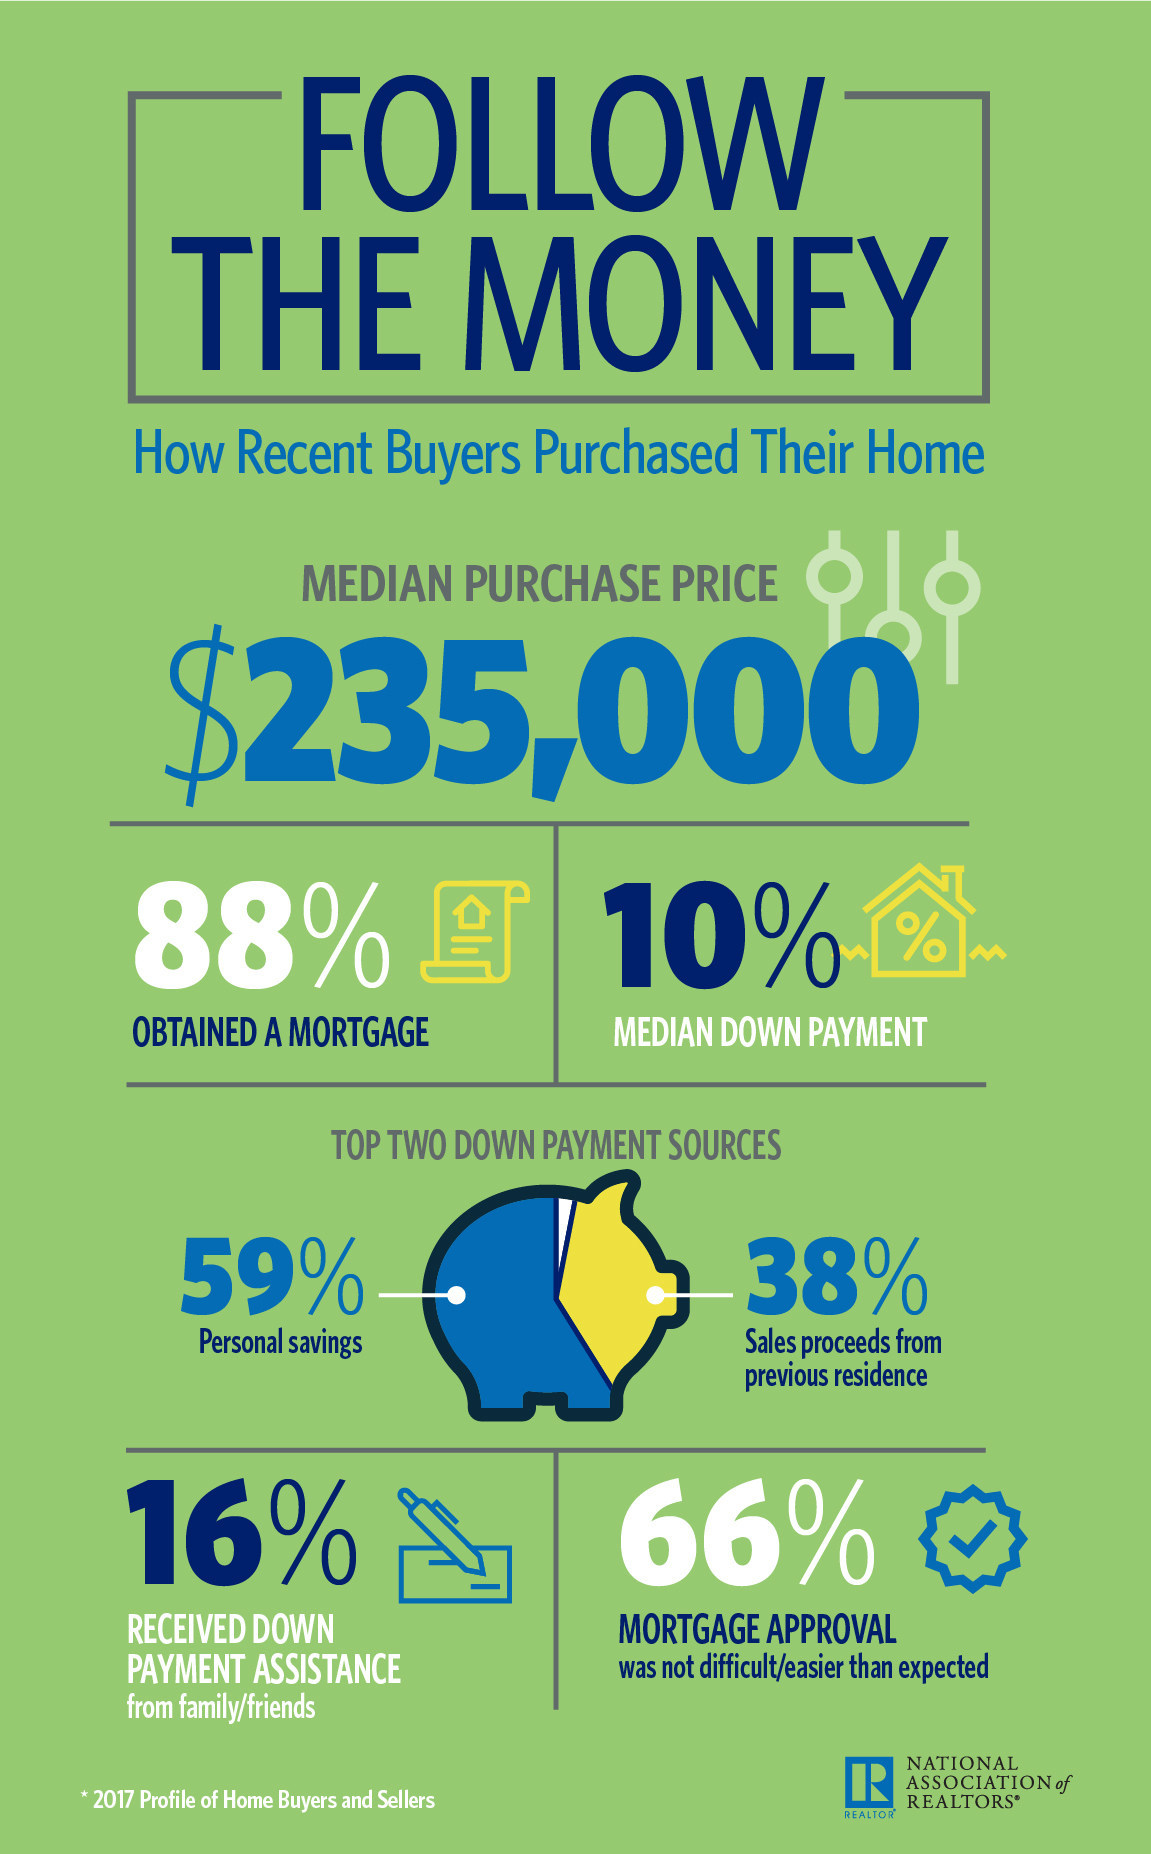 NAR Infographic: How Recent Buyers Purchased Their Home